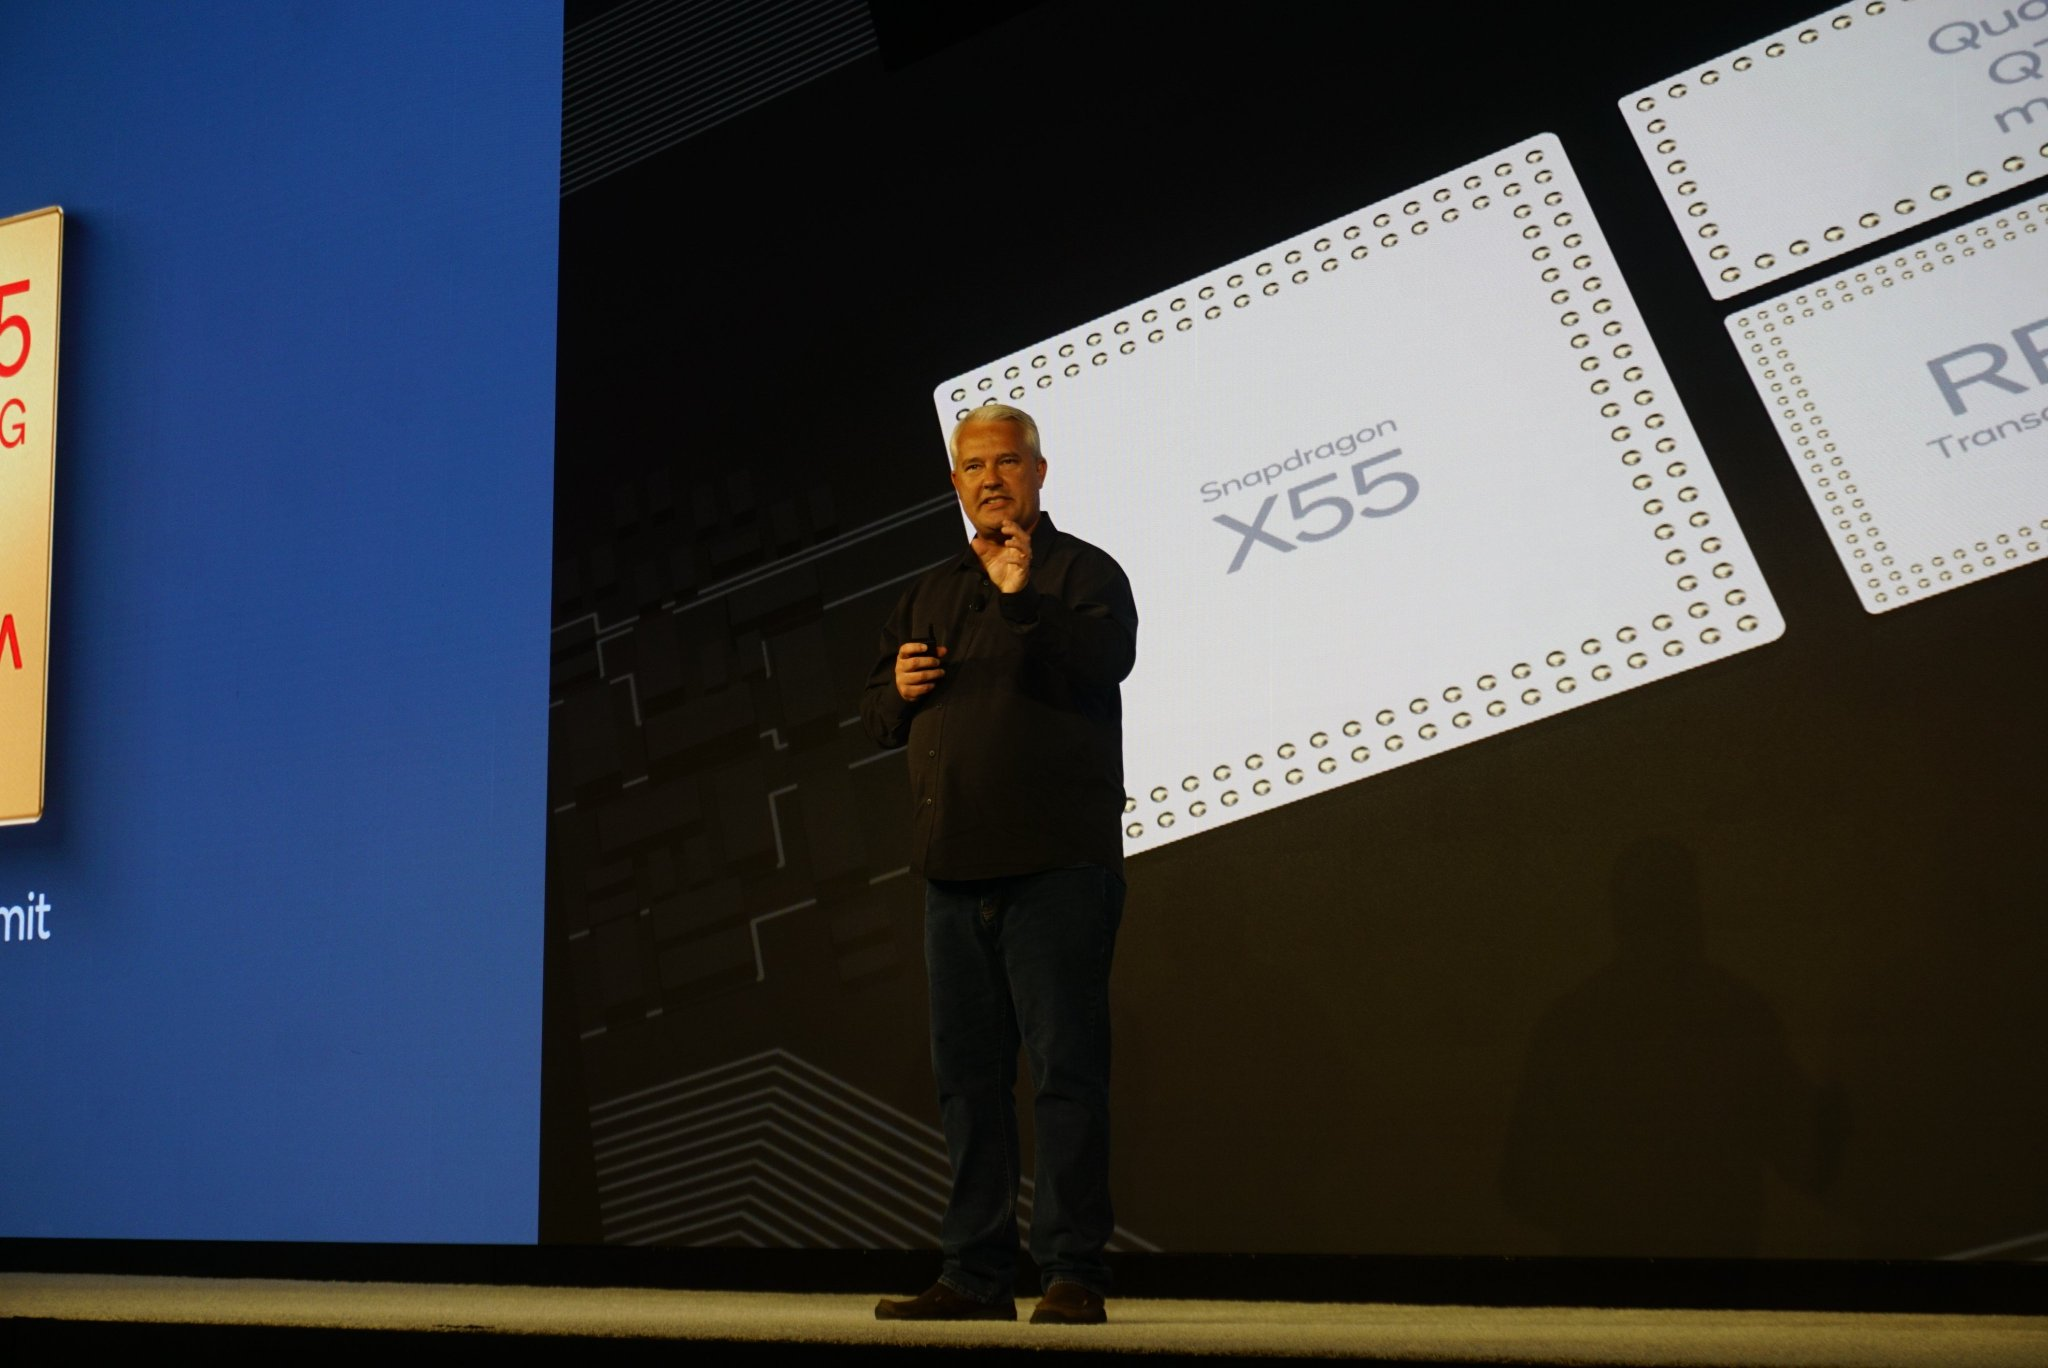 Keith Kressin en un evento de Qualcomm